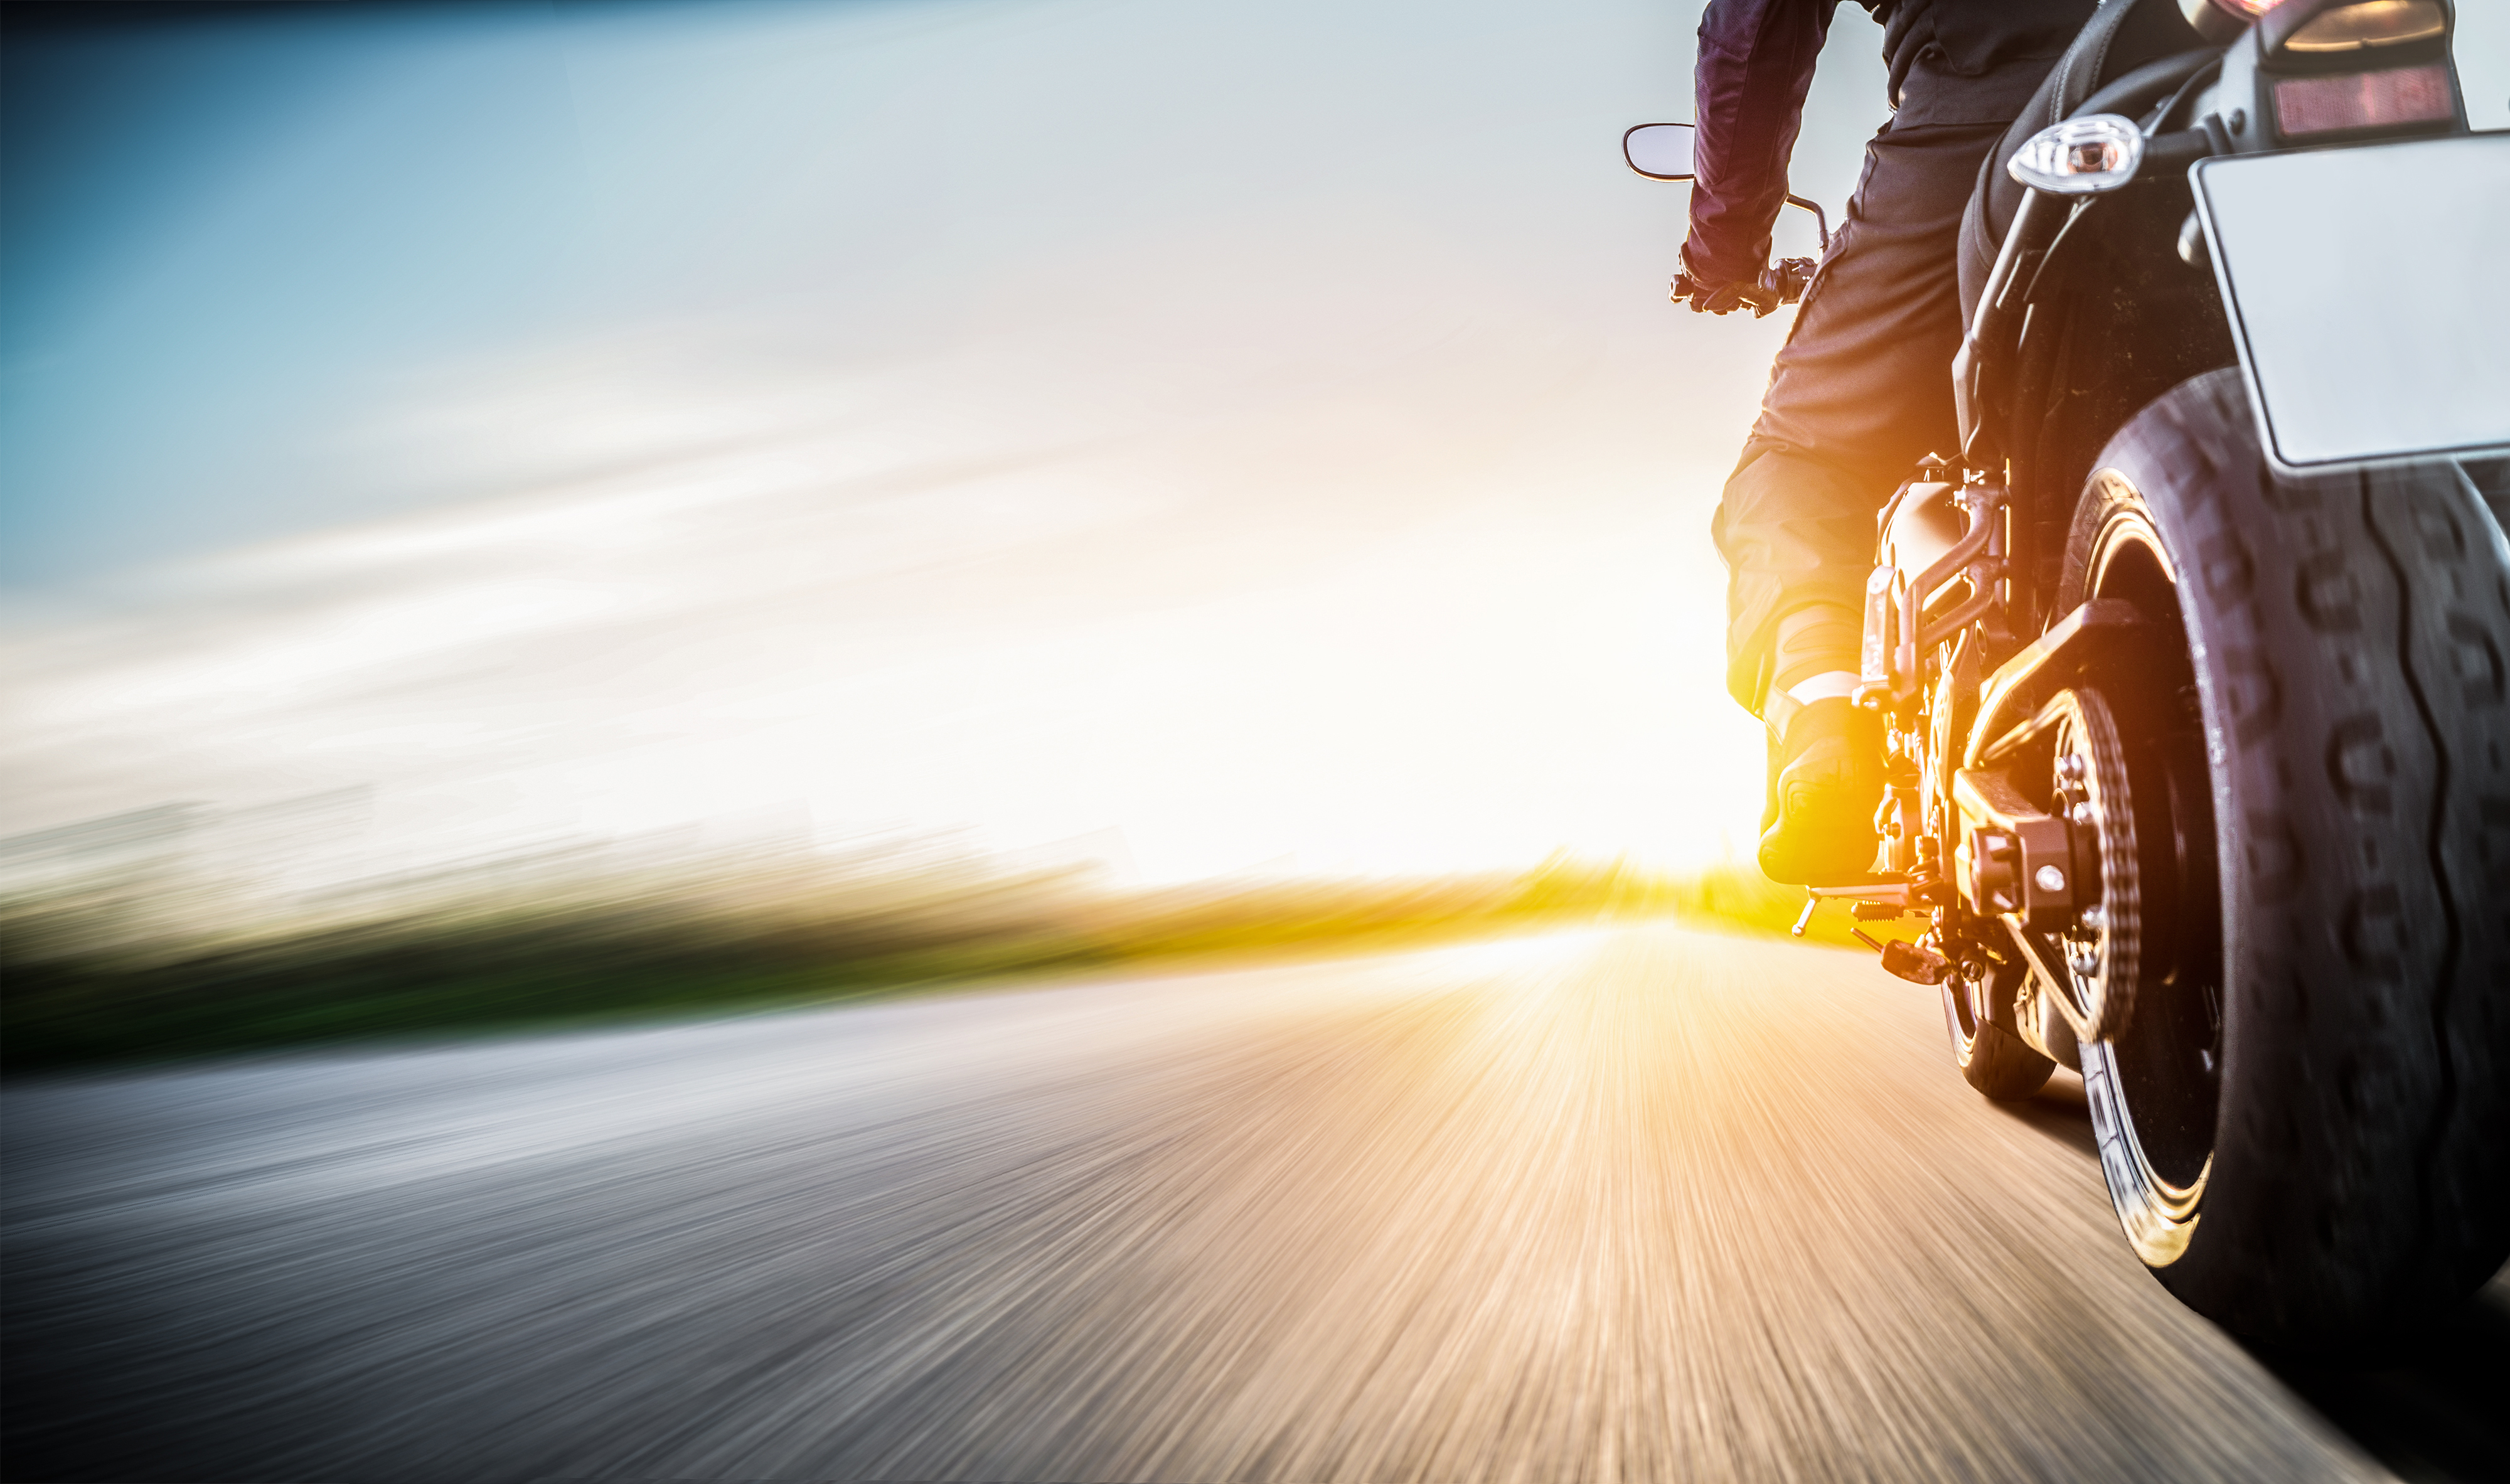 When full coverage motorcycle insurance is what you need.